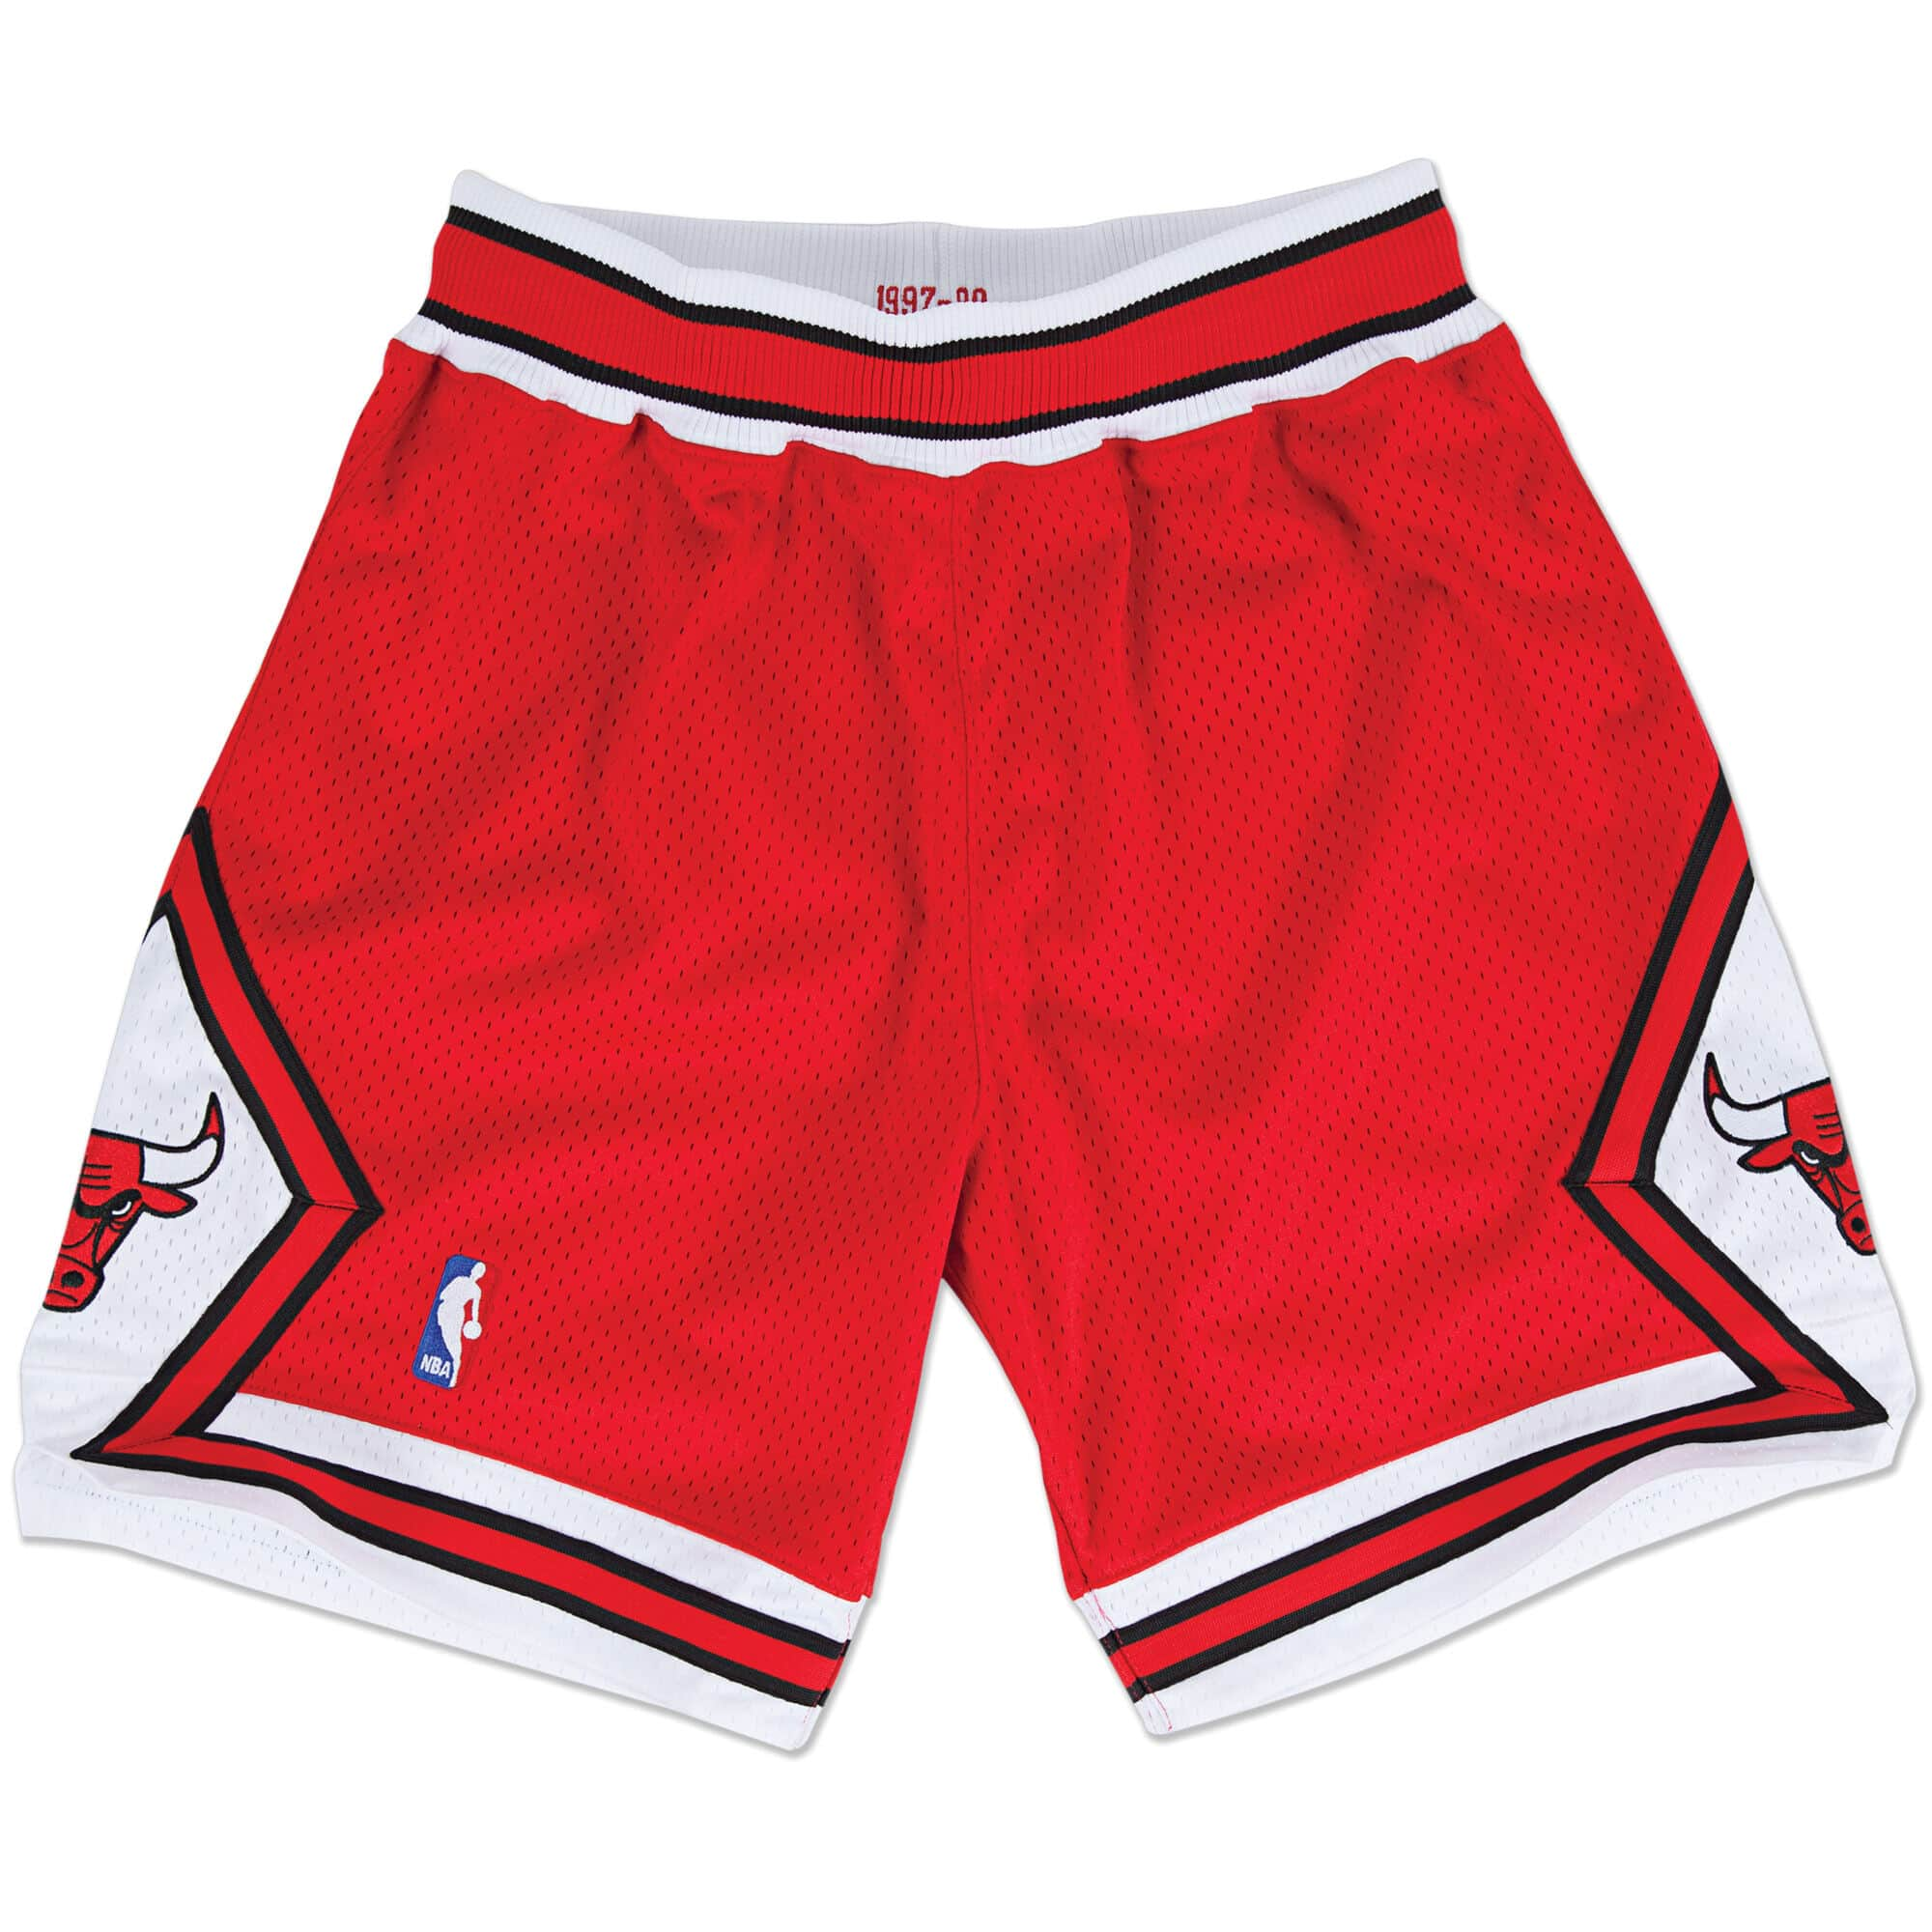 Authentic Shorts Chicago Bulls Road 1997-98